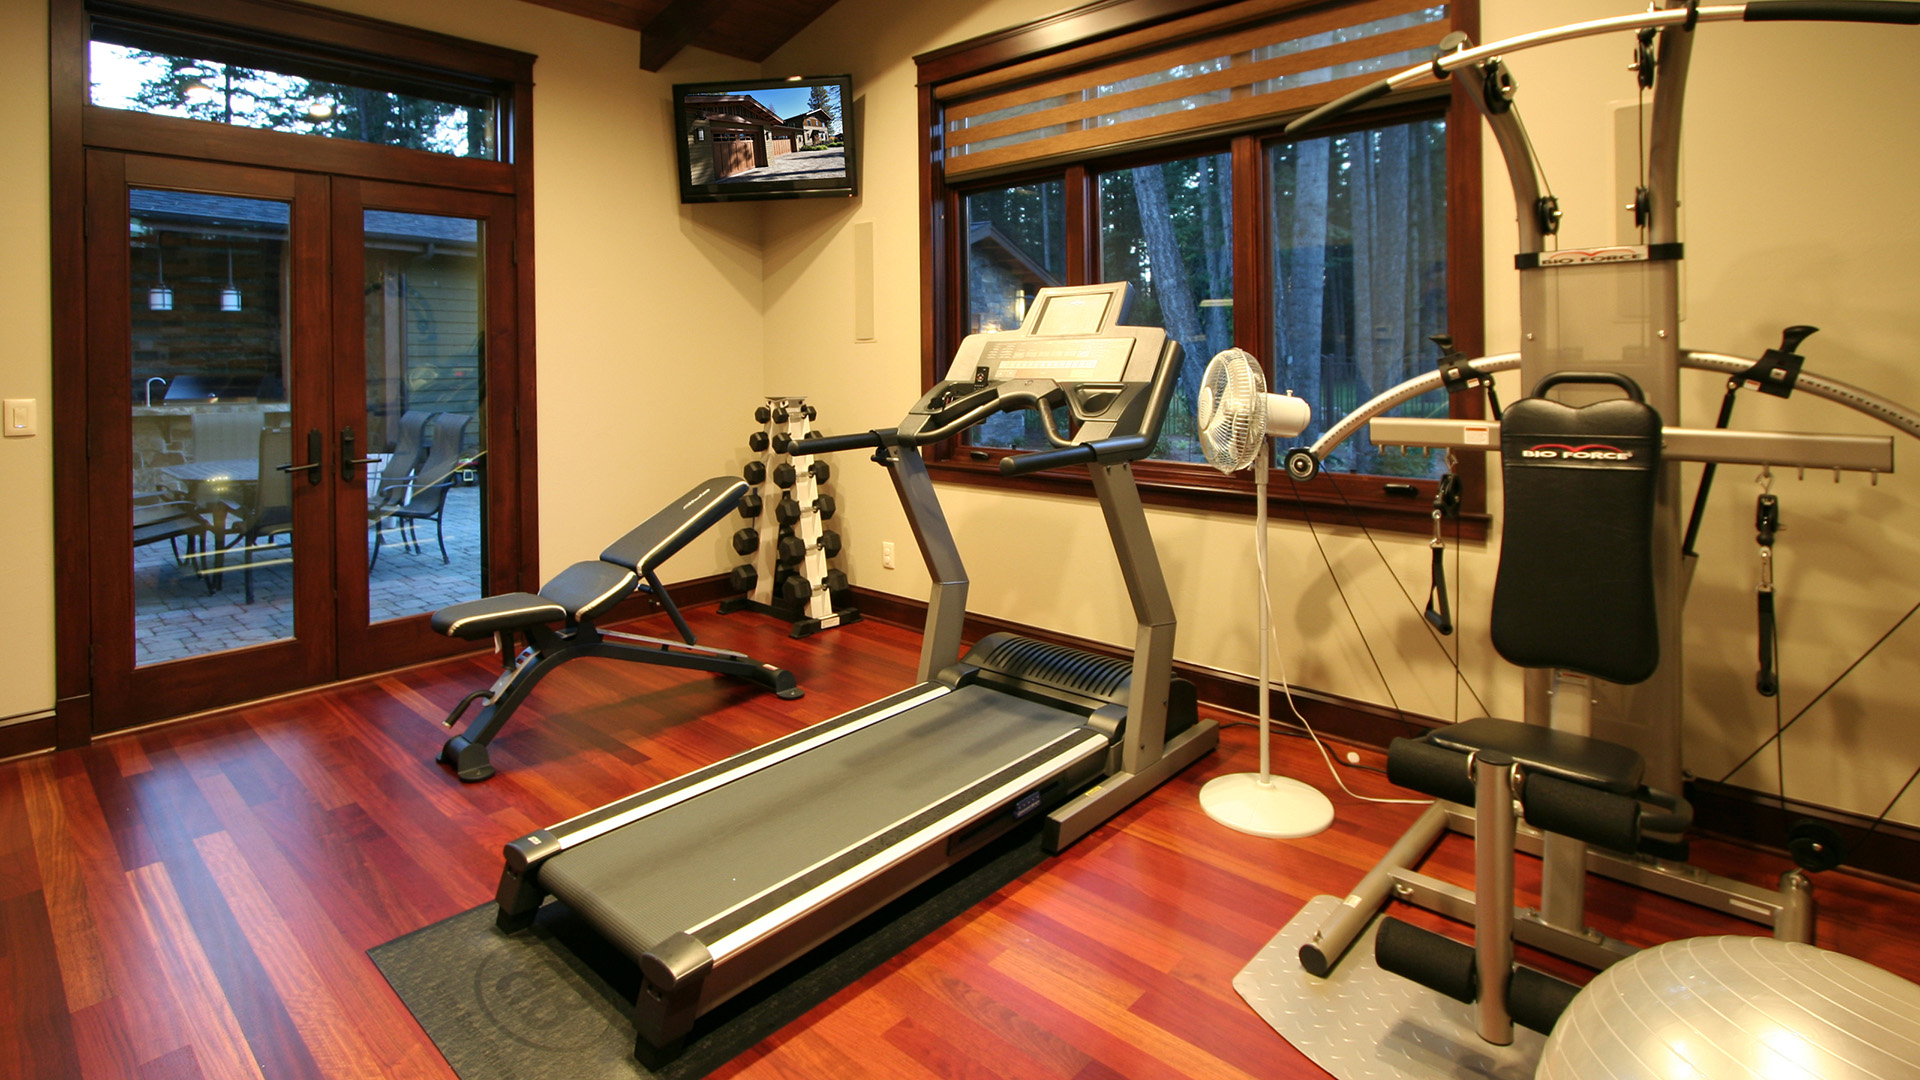 Coeur d'Alene Residence Workout Room